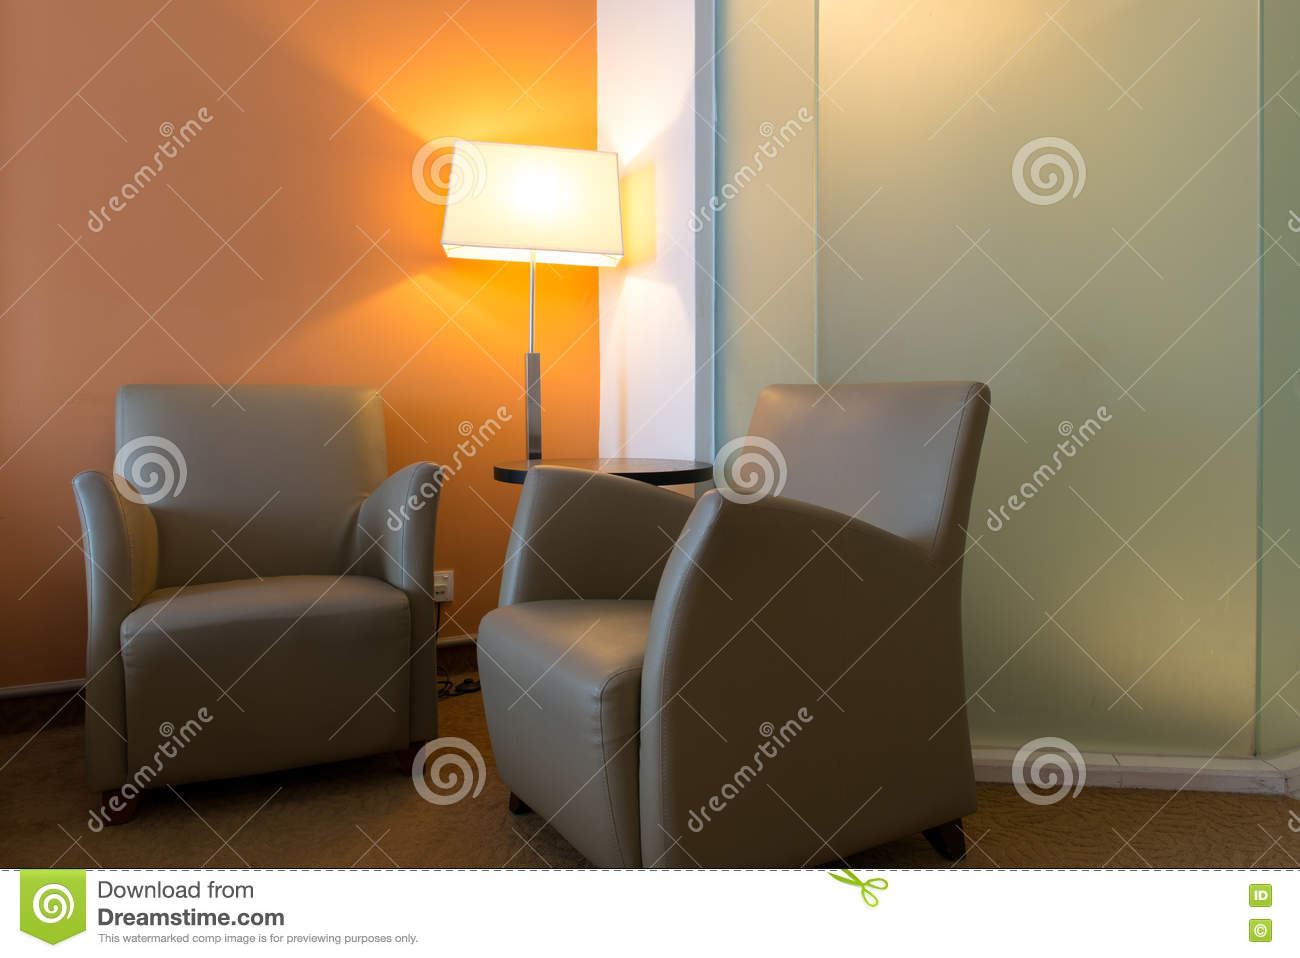 Two Single Sofa In Bedroom Stock Image Image Of Interior 77350349